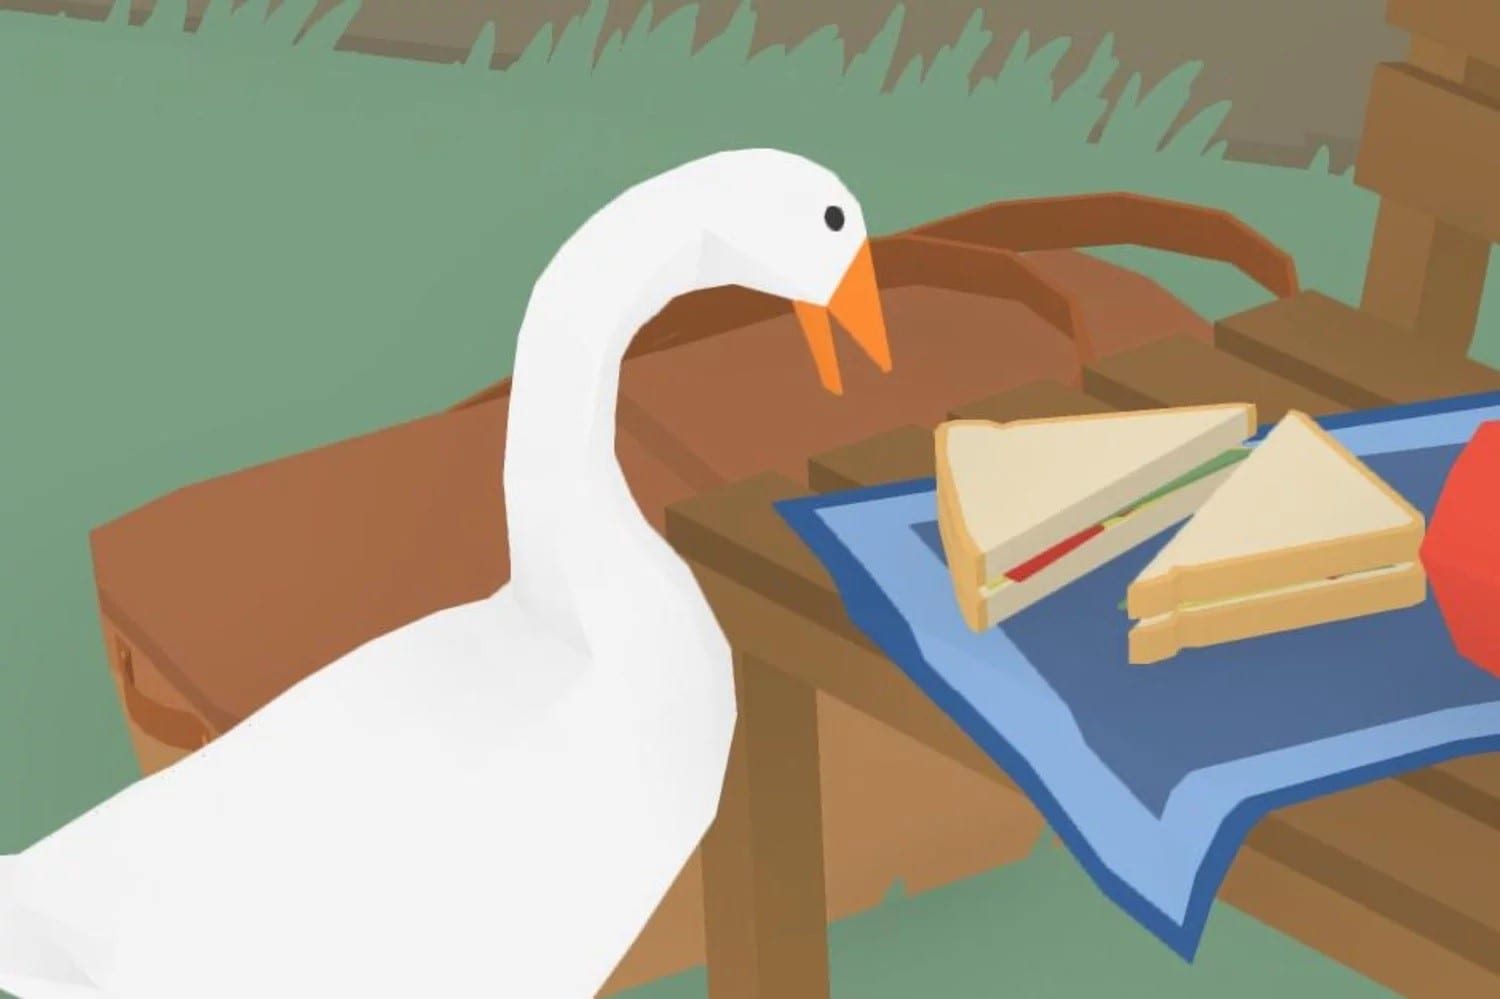 untitled goose game, guide, how to break the broom